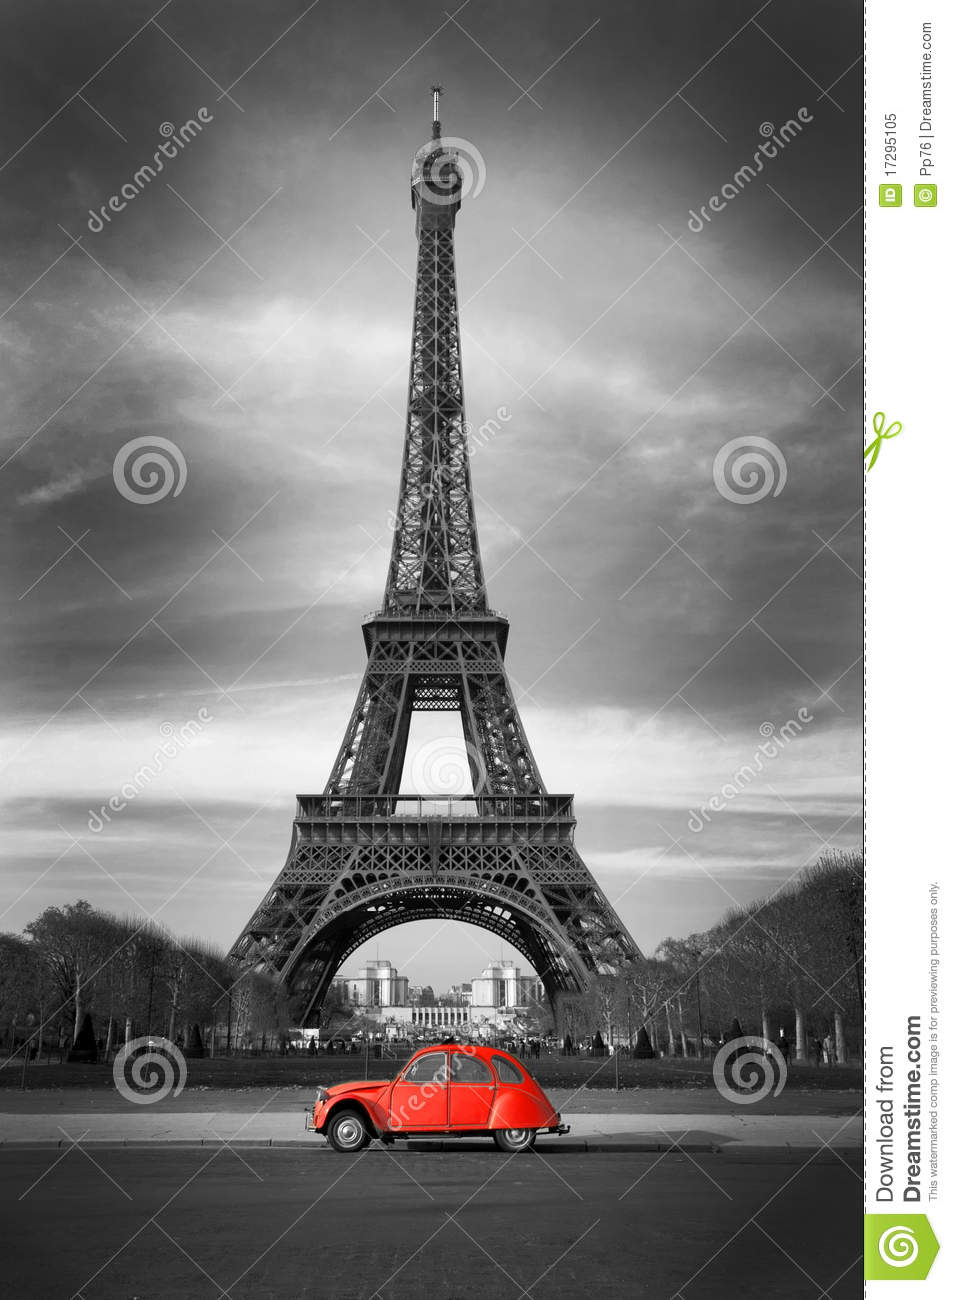 eiffel tower with old french red car stock image image of architecture landscape 17295105. Black Bedroom Furniture Sets. Home Design Ideas